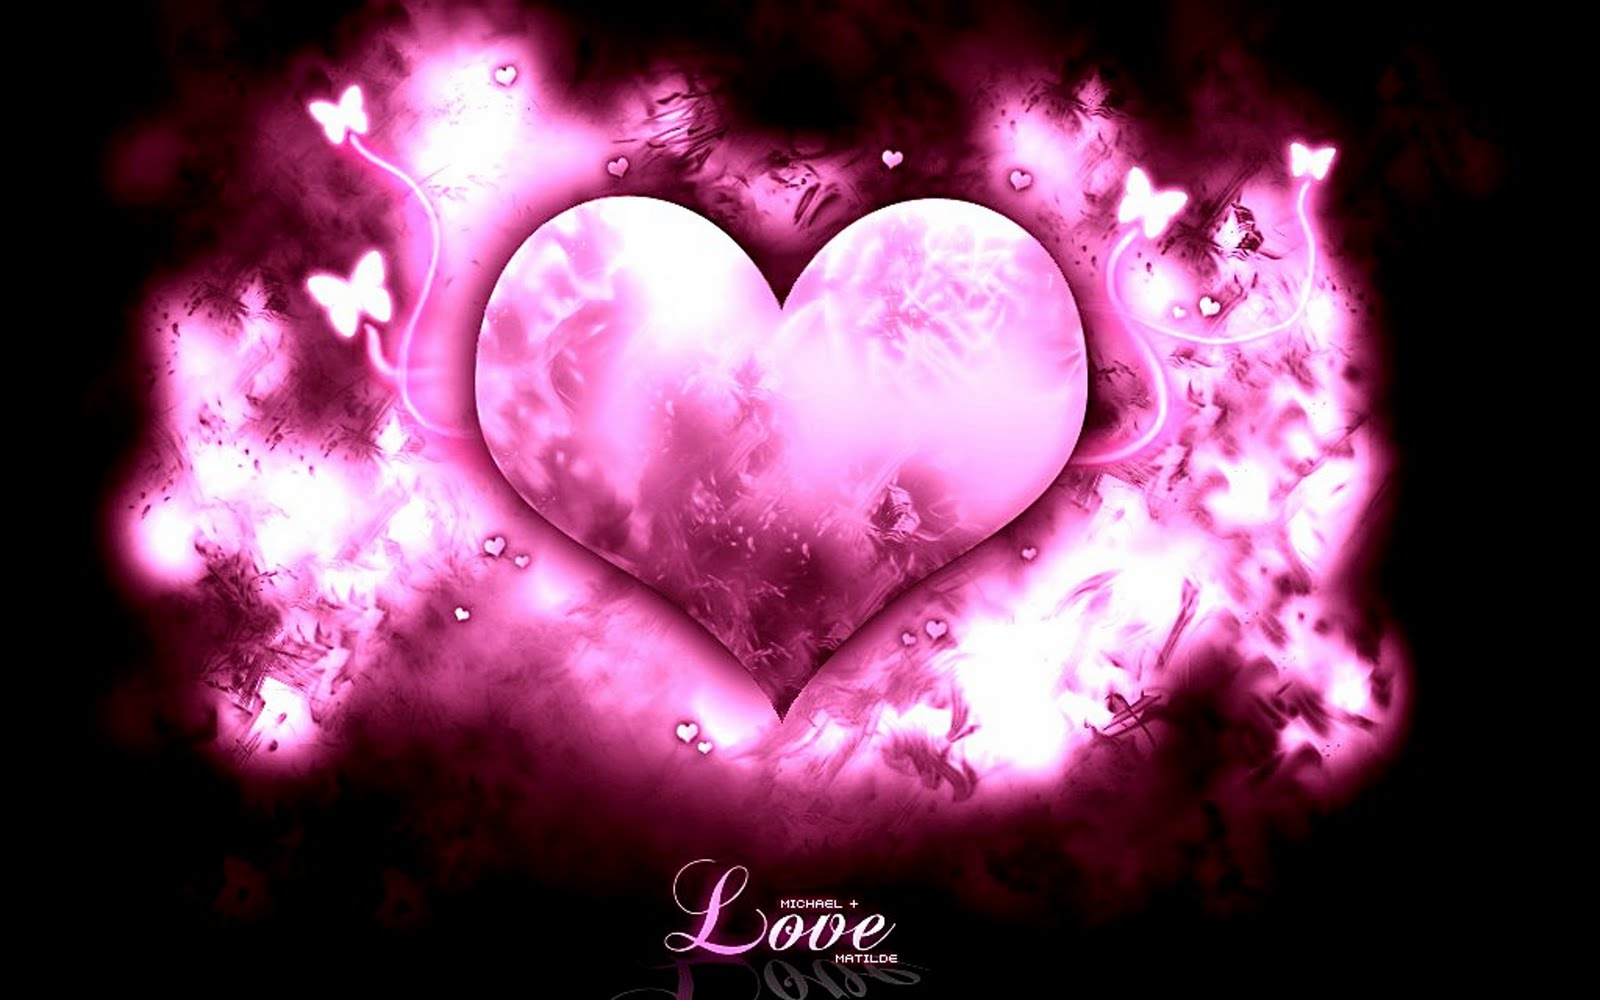 Cute heart and love wallpapers with different backgrounds